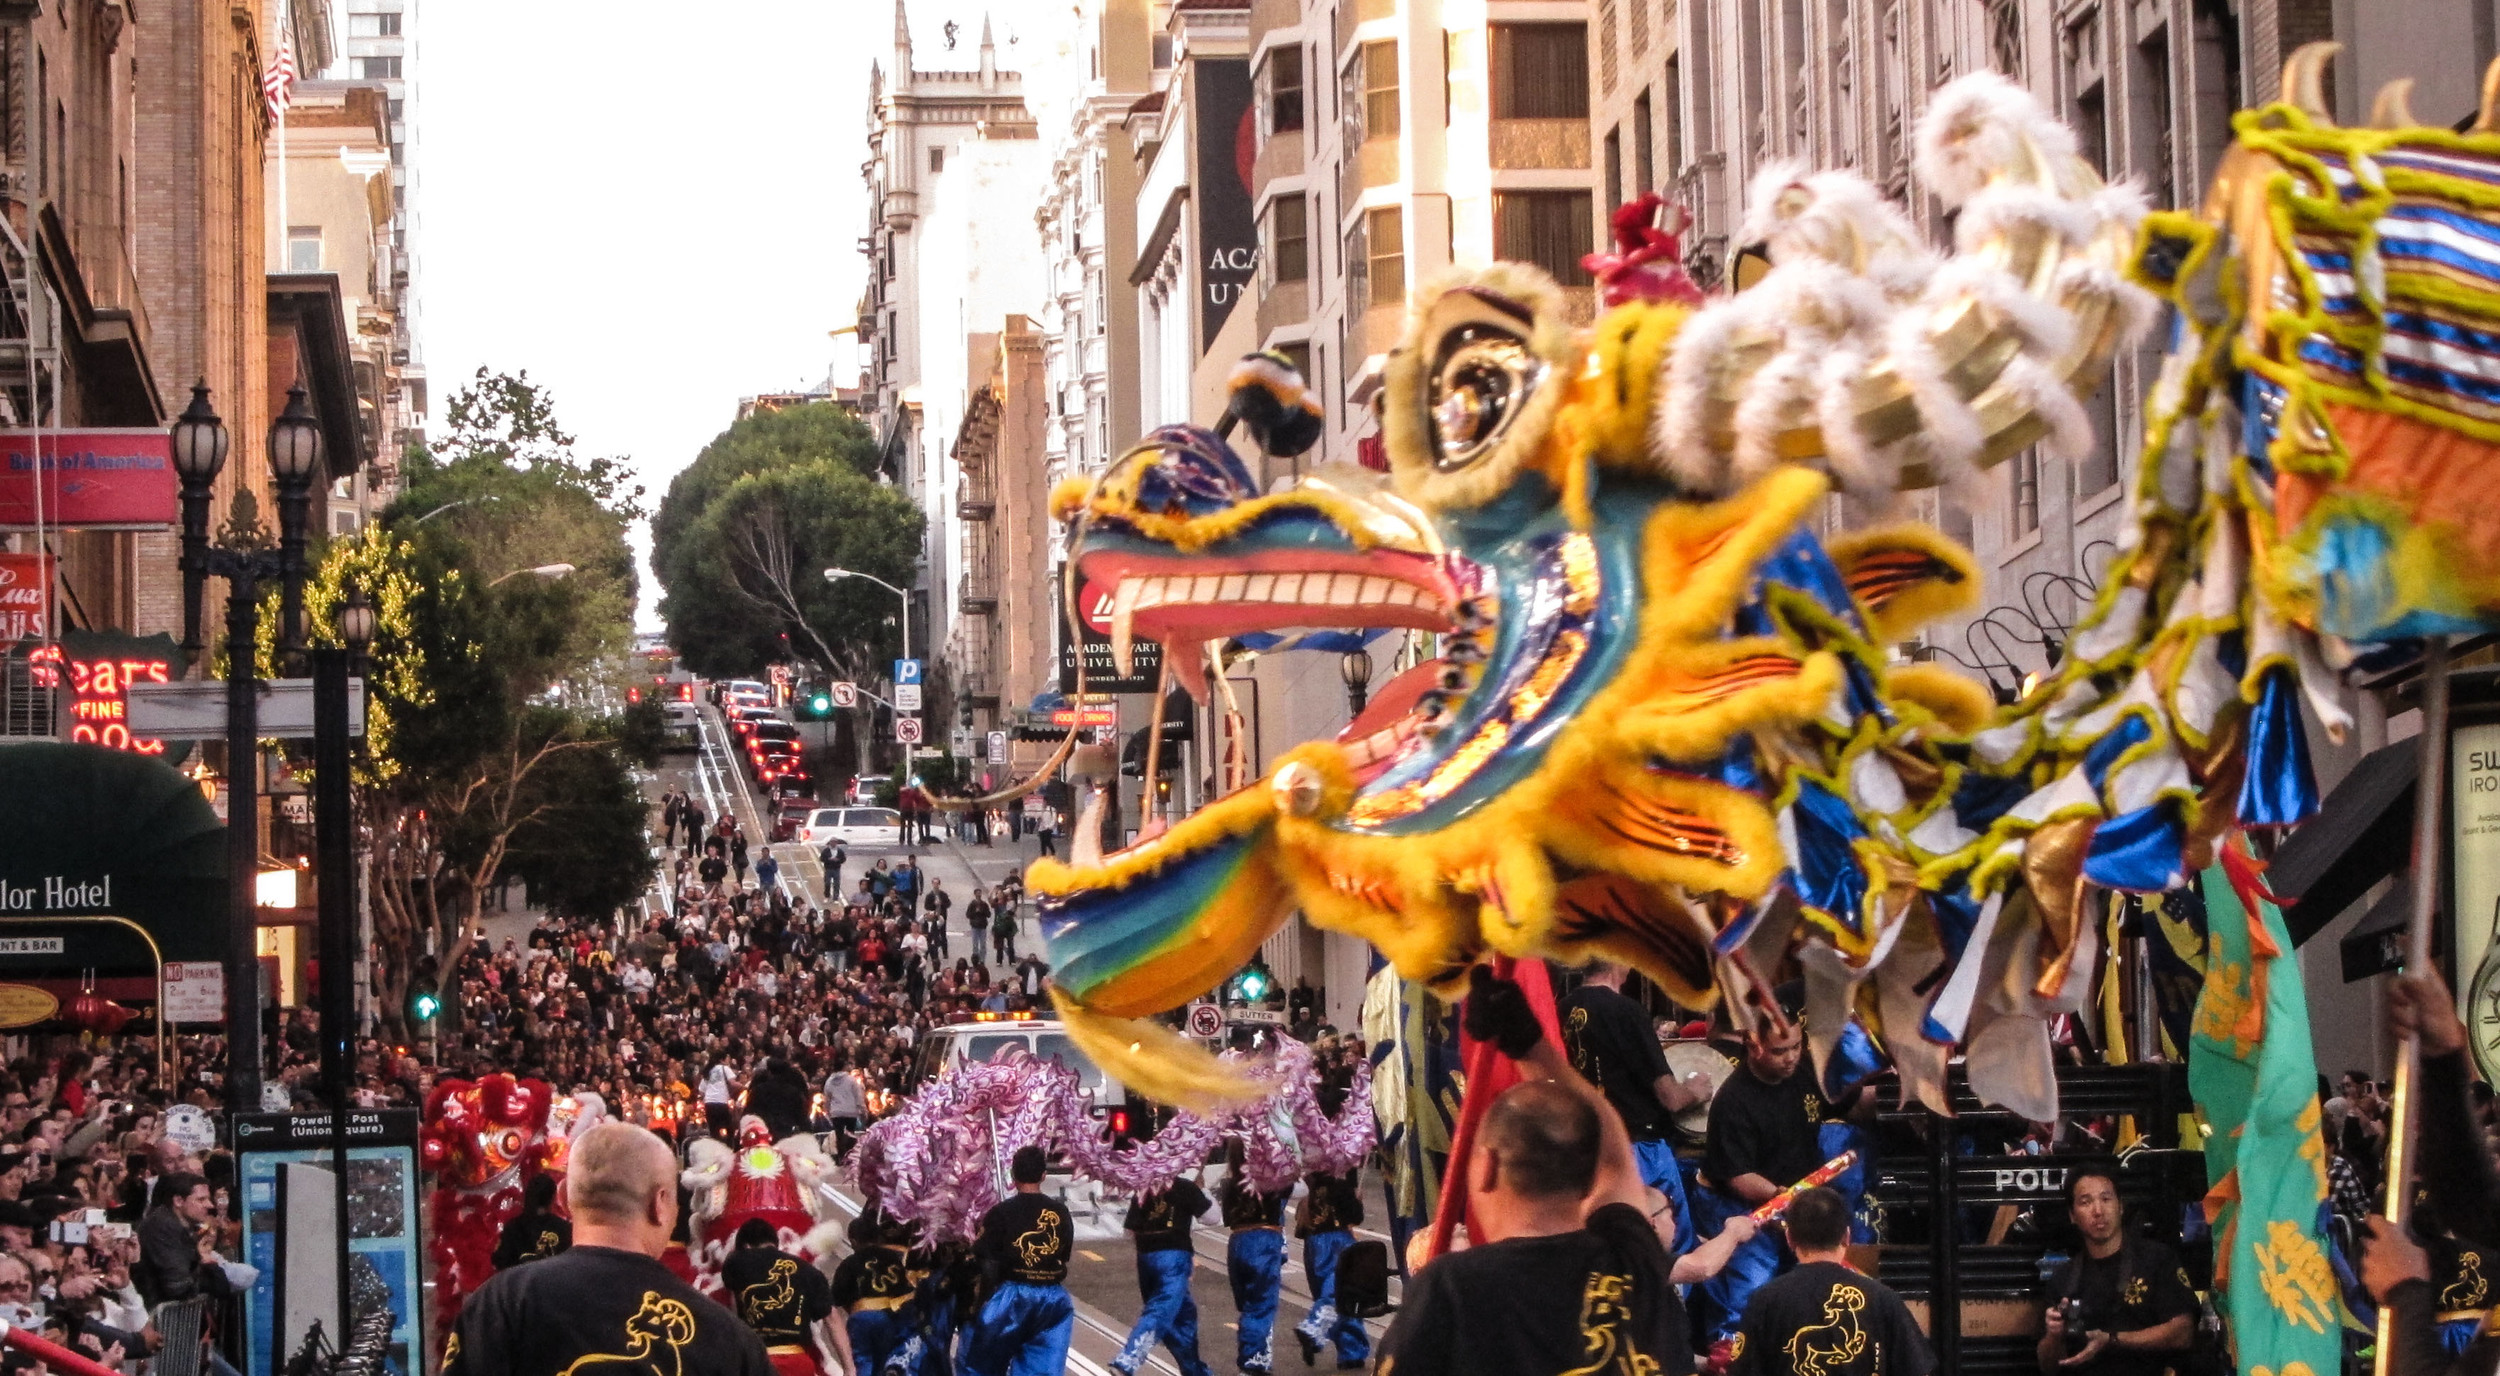 This is one of the top 10 Chinese parades in the world!